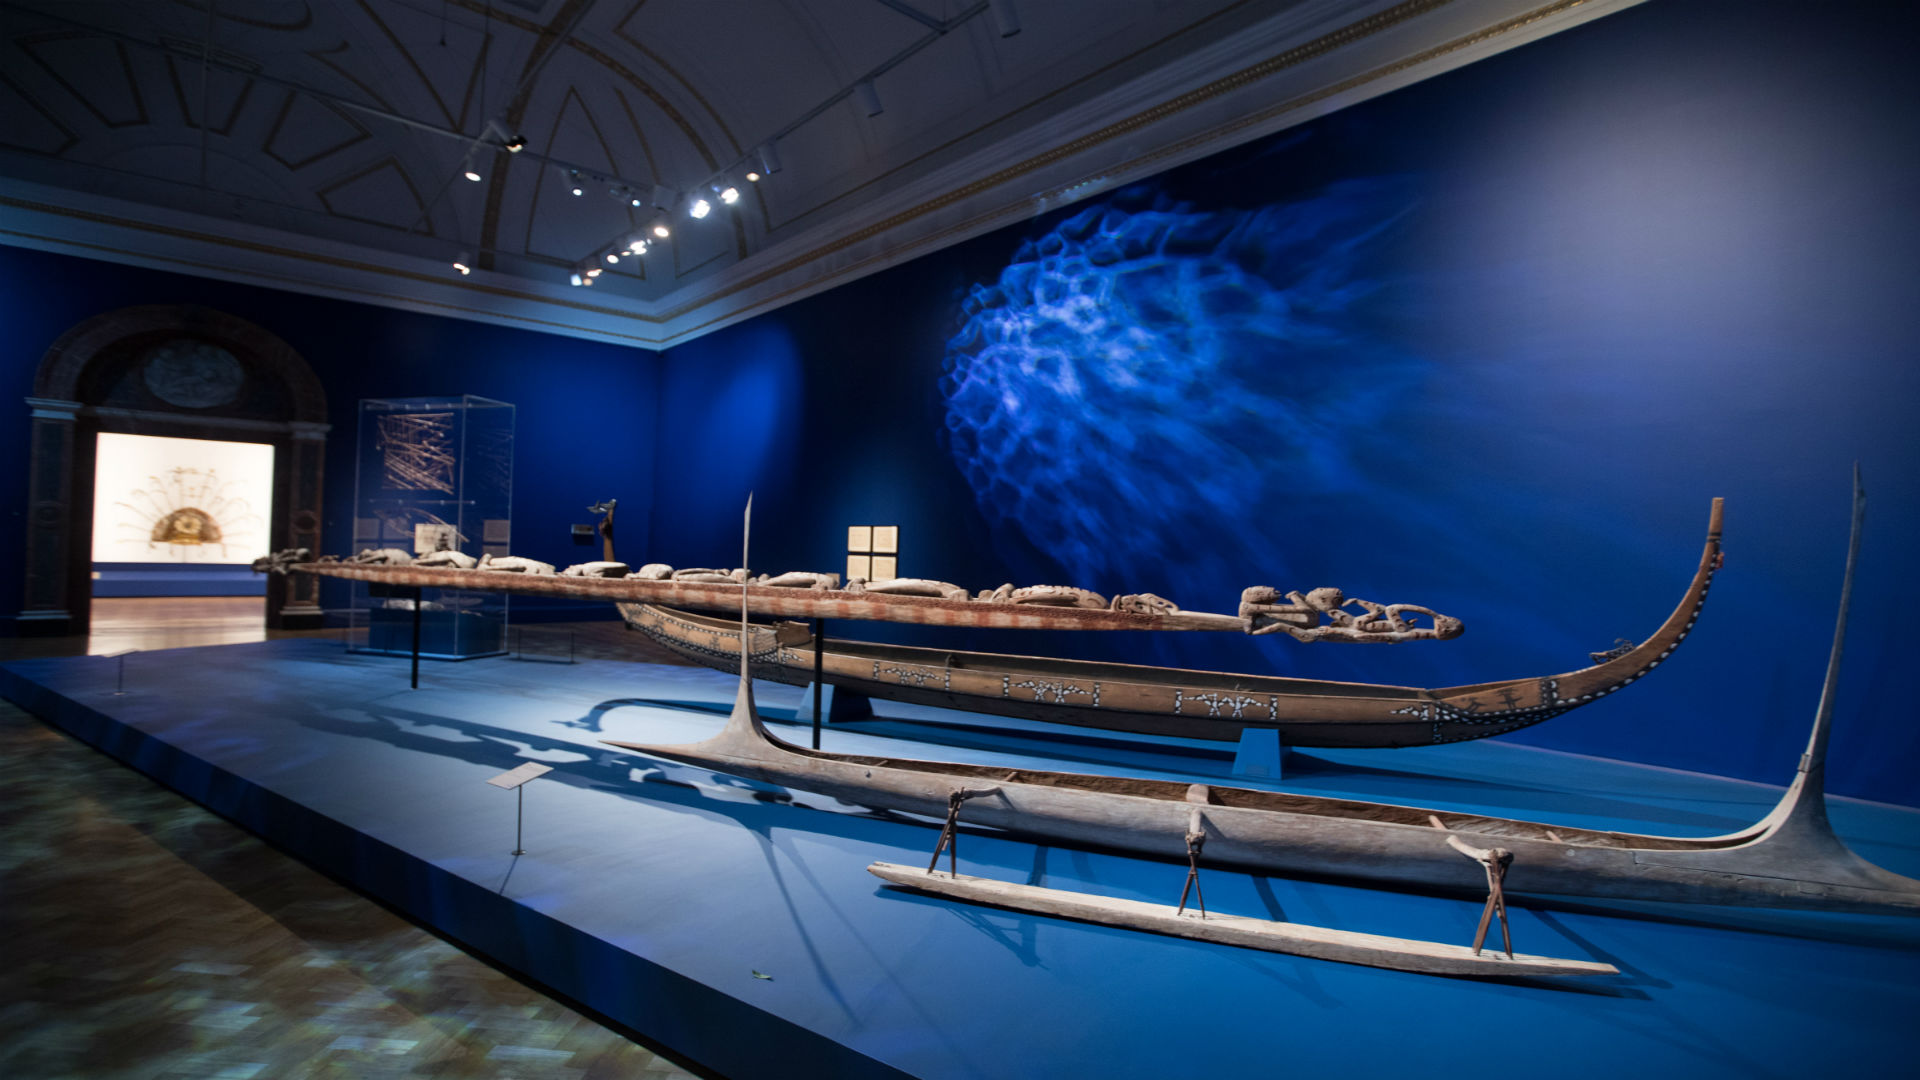 Oceania exhibition installation view at Royal Academy of Arts